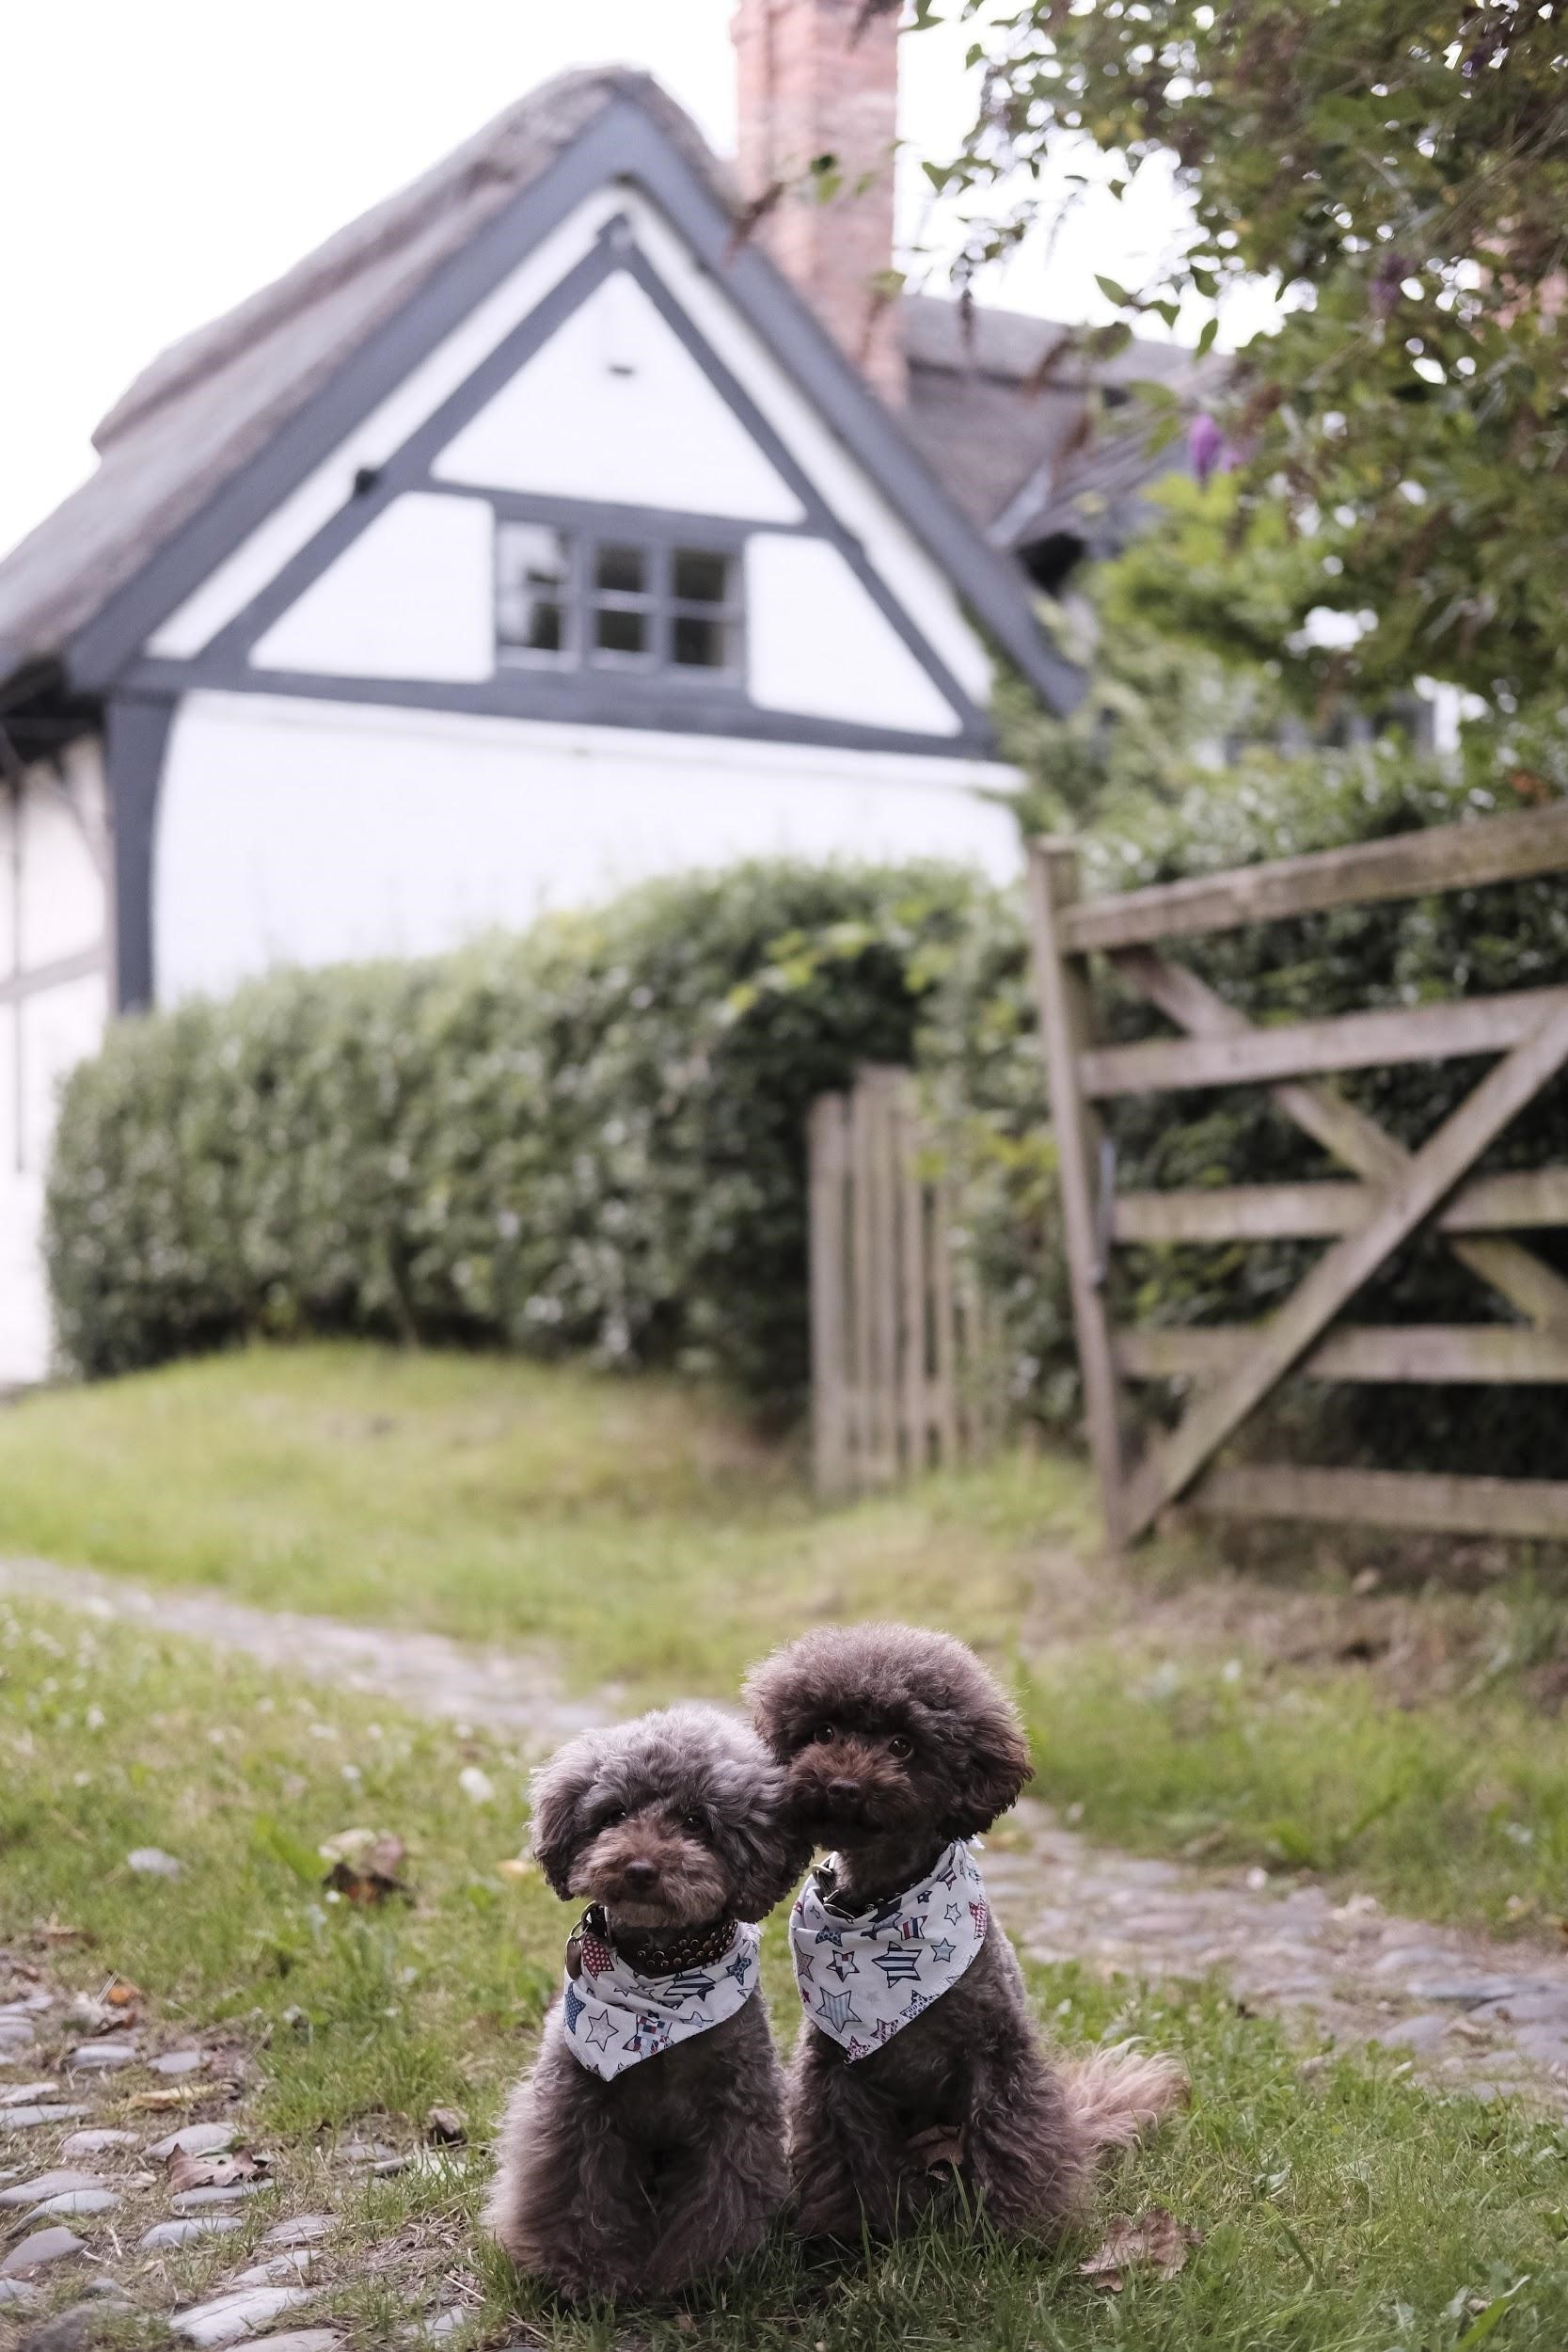 7 quetions every dog owners needs to know when buying a home